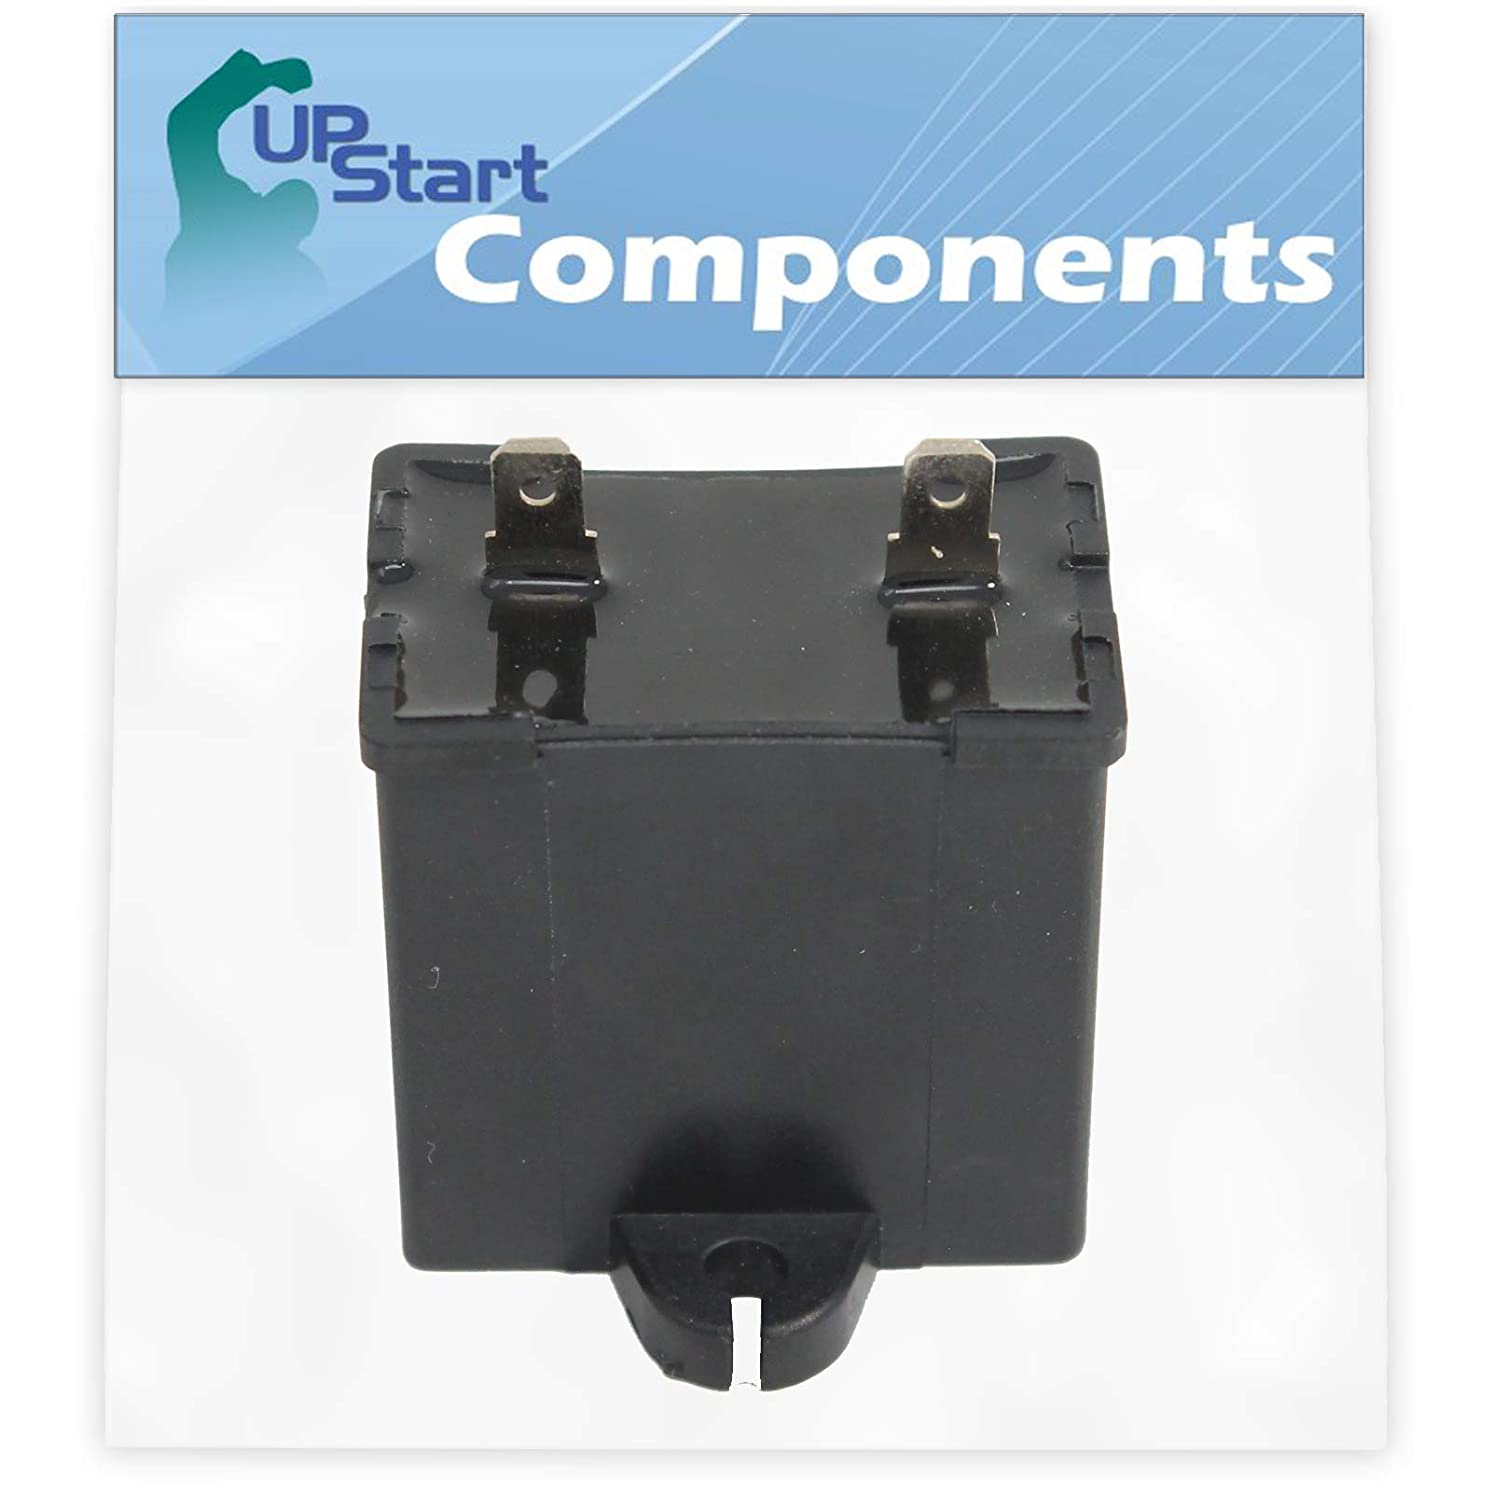 W10662129 Refrigerator and Freezer Compressor Run Capacitor Replacement for Maytag MBR1953XES1 Refrigerator - Compatible with 2169373 WPW10662129 Run Capacitor - UpStart Components Brand